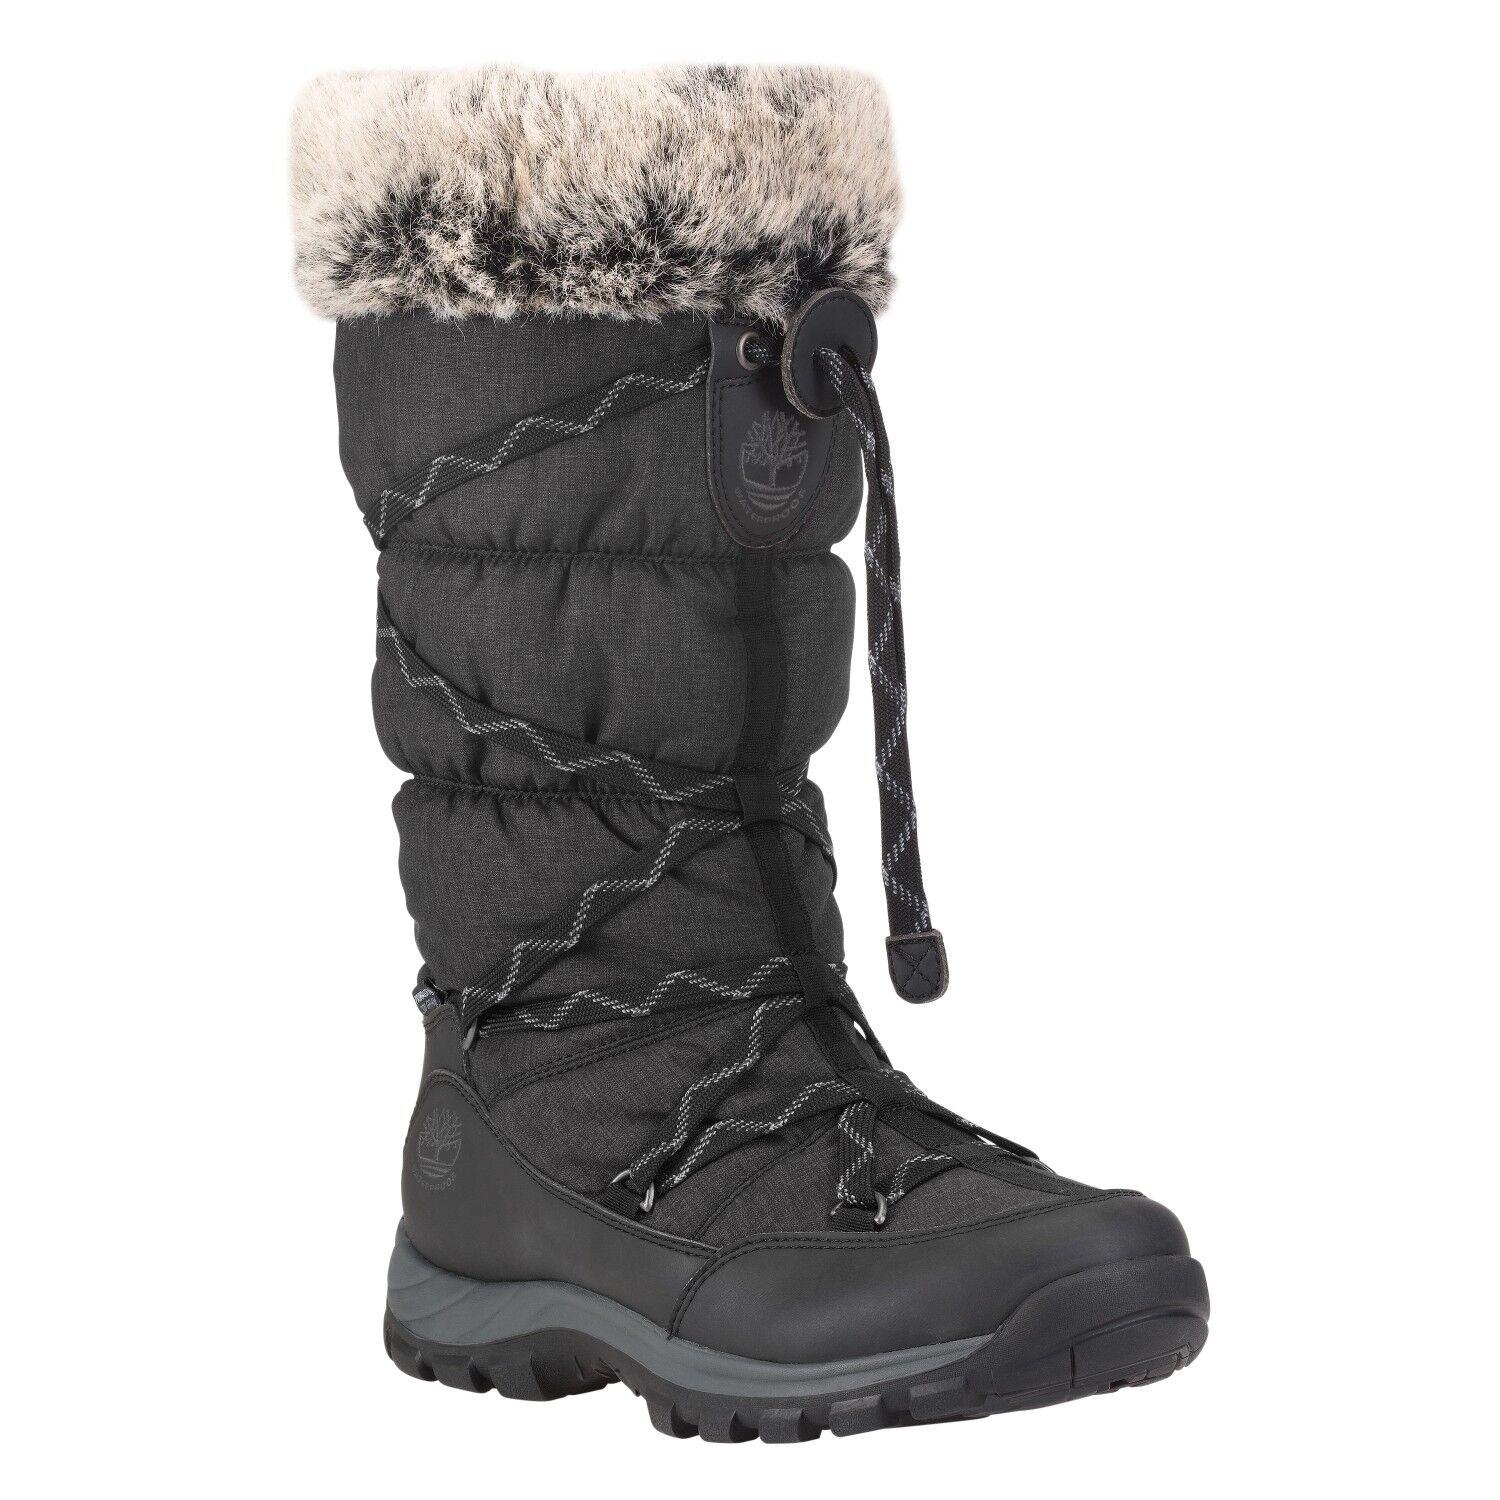 Timberland Women's Chillberg Over the Chill Black Winter Snow Boots 2160R Size 6